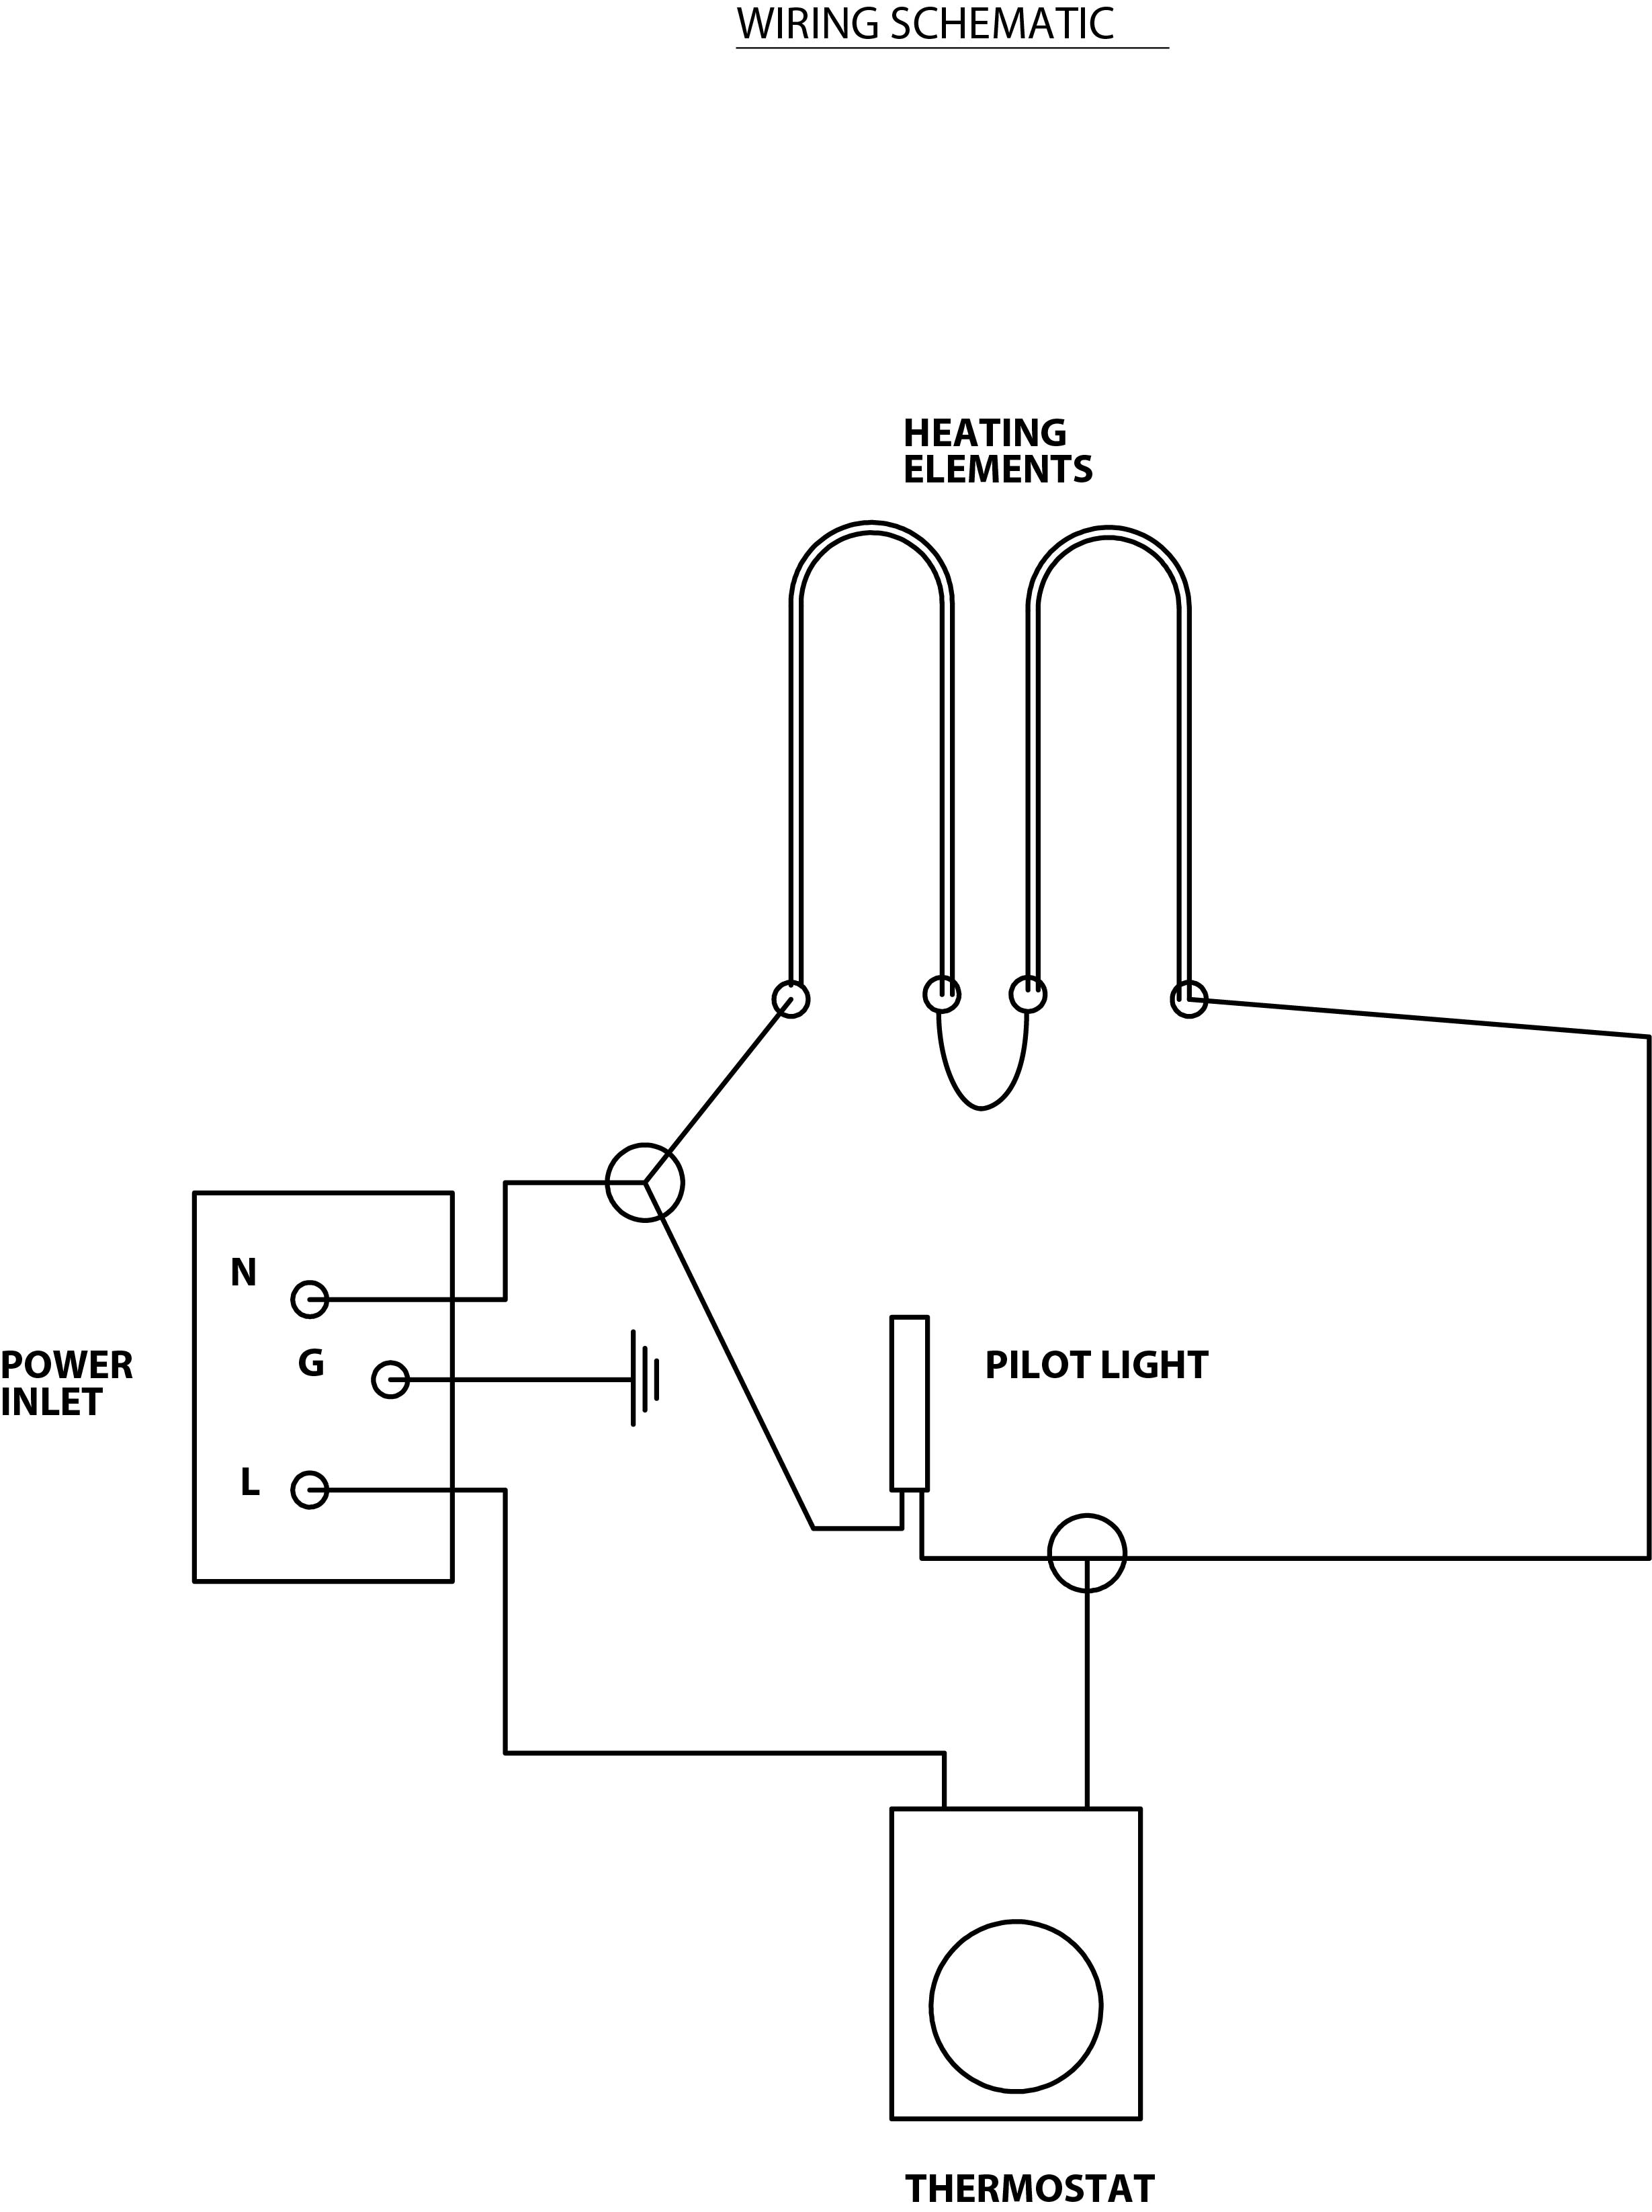 Basic Oven Wiring Diagram Wiring Diagram Schemes Residential Wiring Diagrams  Heat Element Wiring Diagram